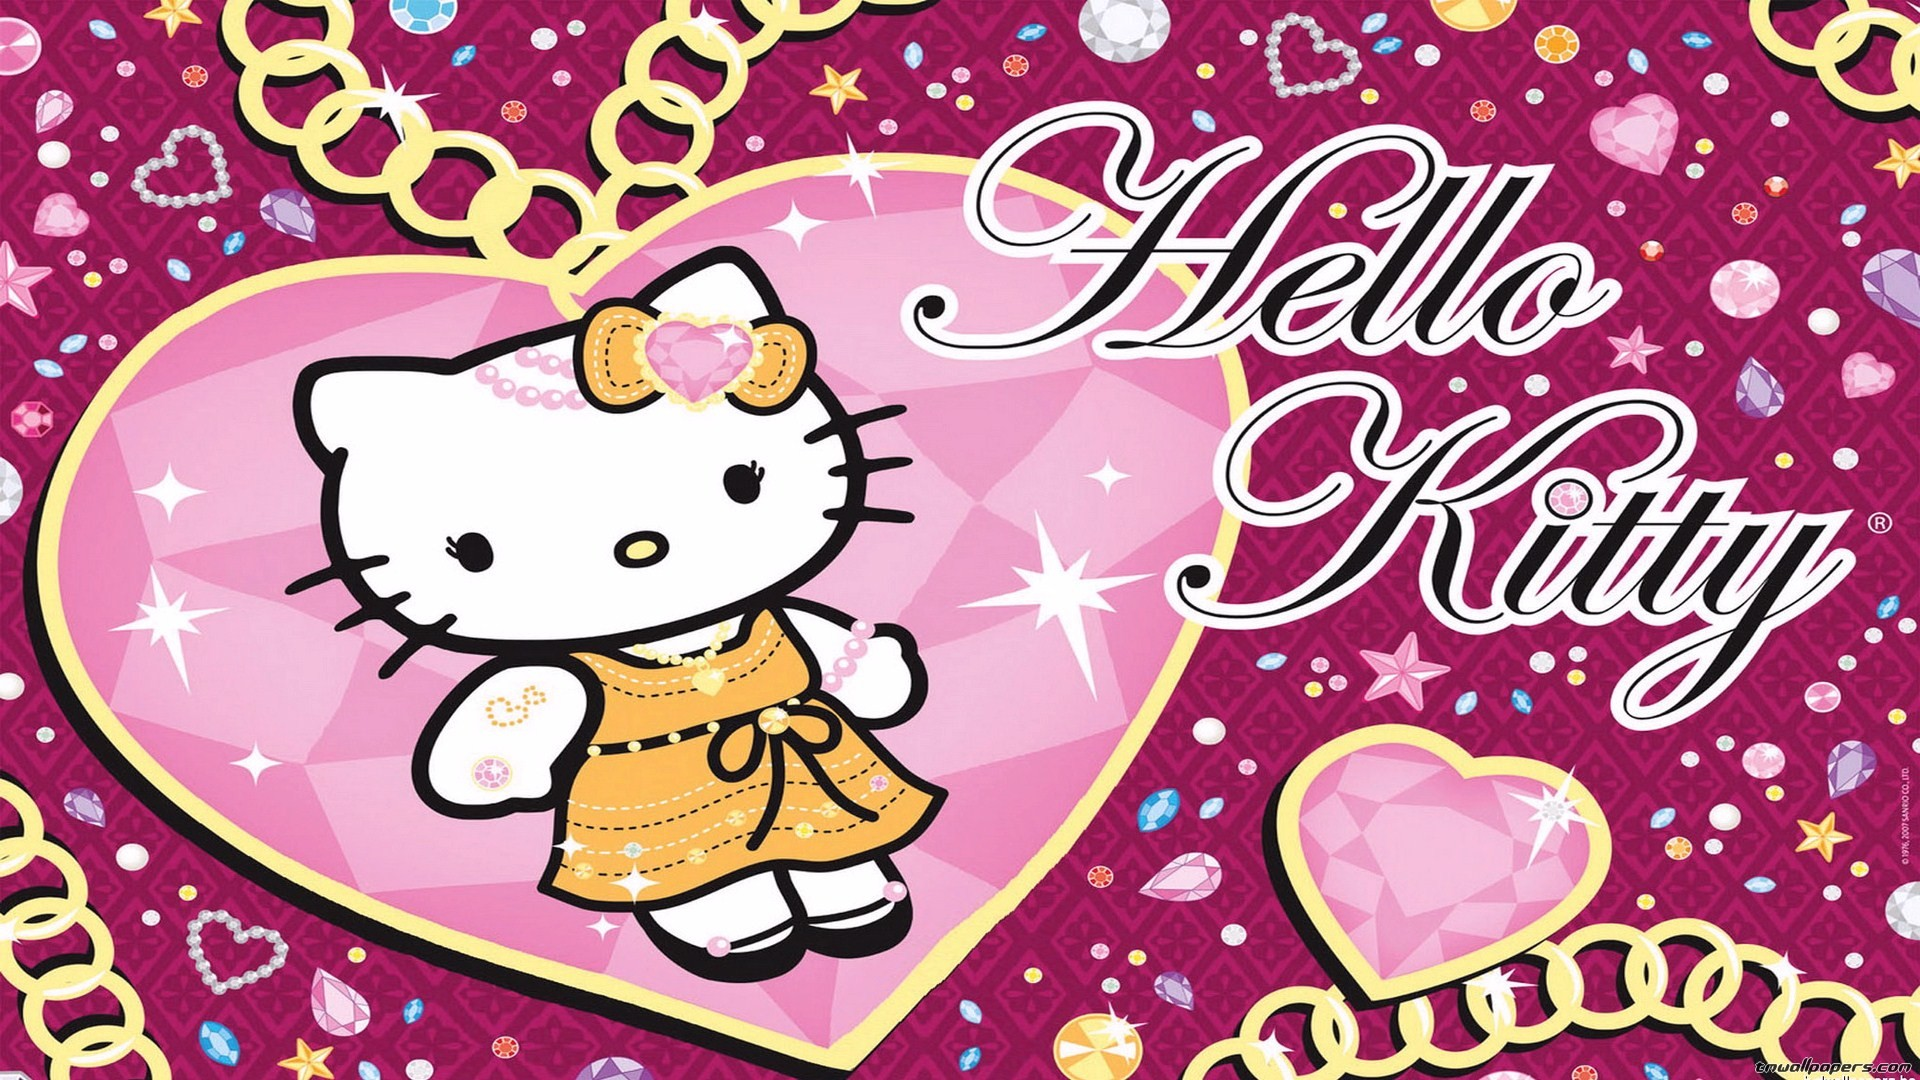 Must see Wallpaper Hello Kitty Android - 968650-large-hd-wallpaper-hello-kitty-1920x1080-for-android-tablet  Snapshot_792966.jpg